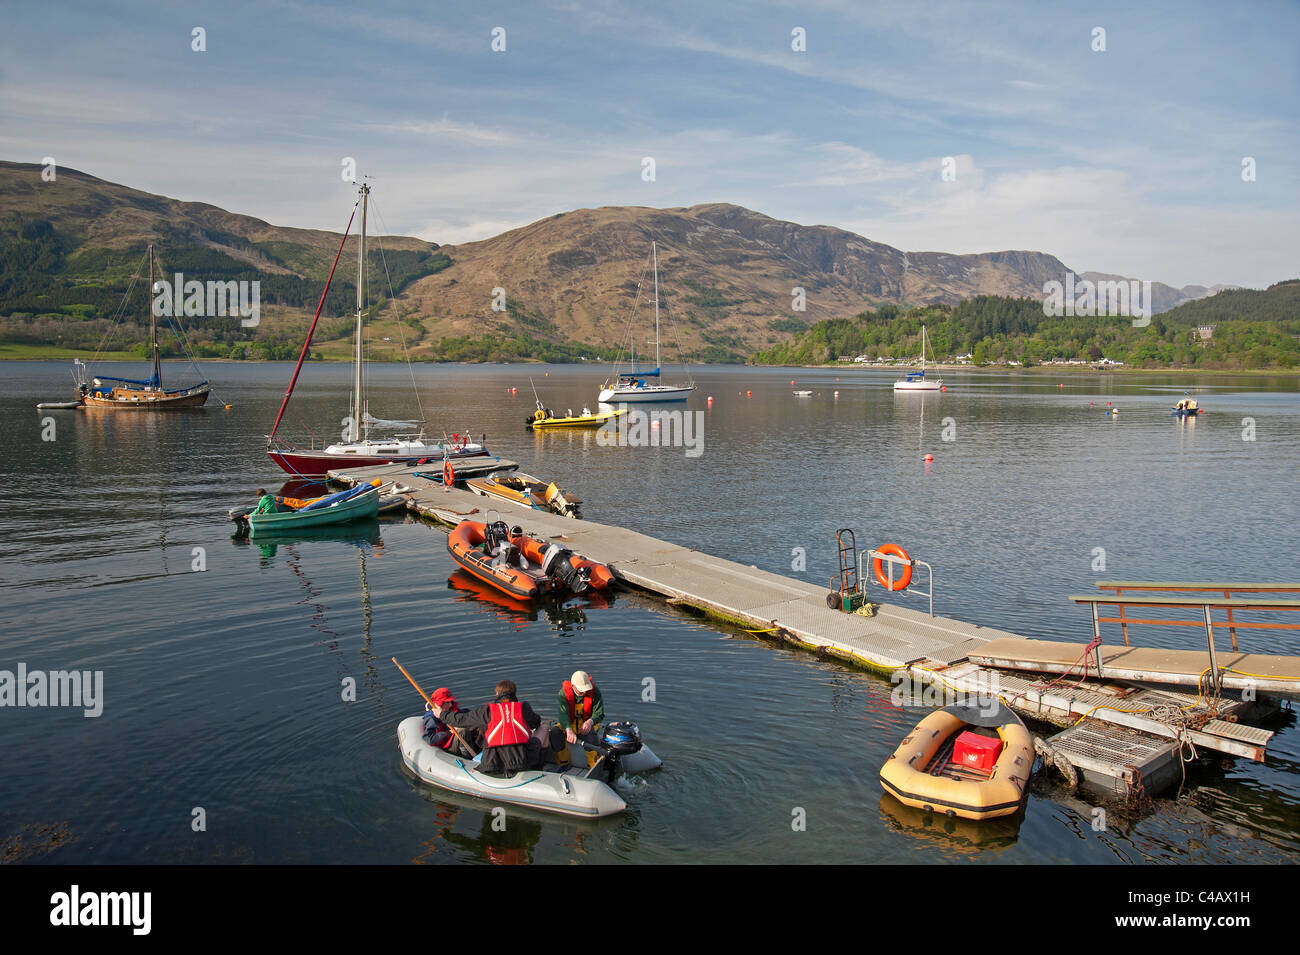 Boat moorings at Ballachuilish, Loch Leven,  Glencoe, Highland Region Scotland. SCO 7133 - Stock Image